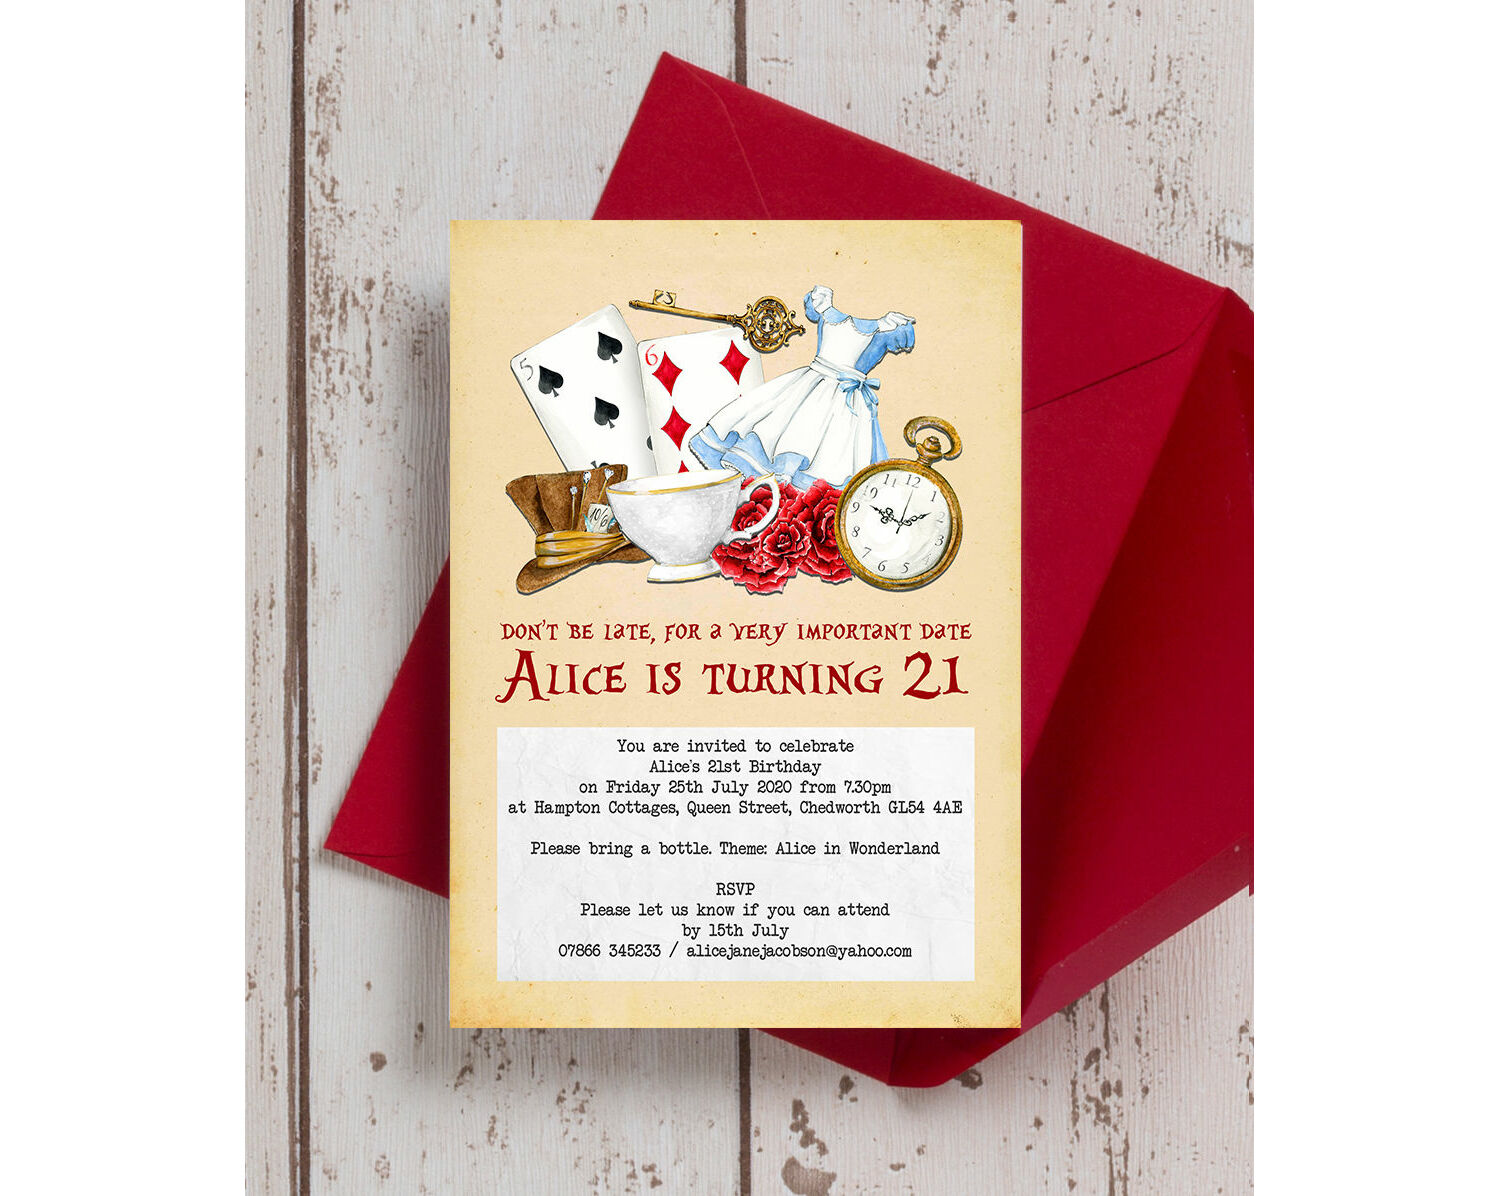 Pack of 4 Double sided Alice in Wonderland Street Signs Party Decorations